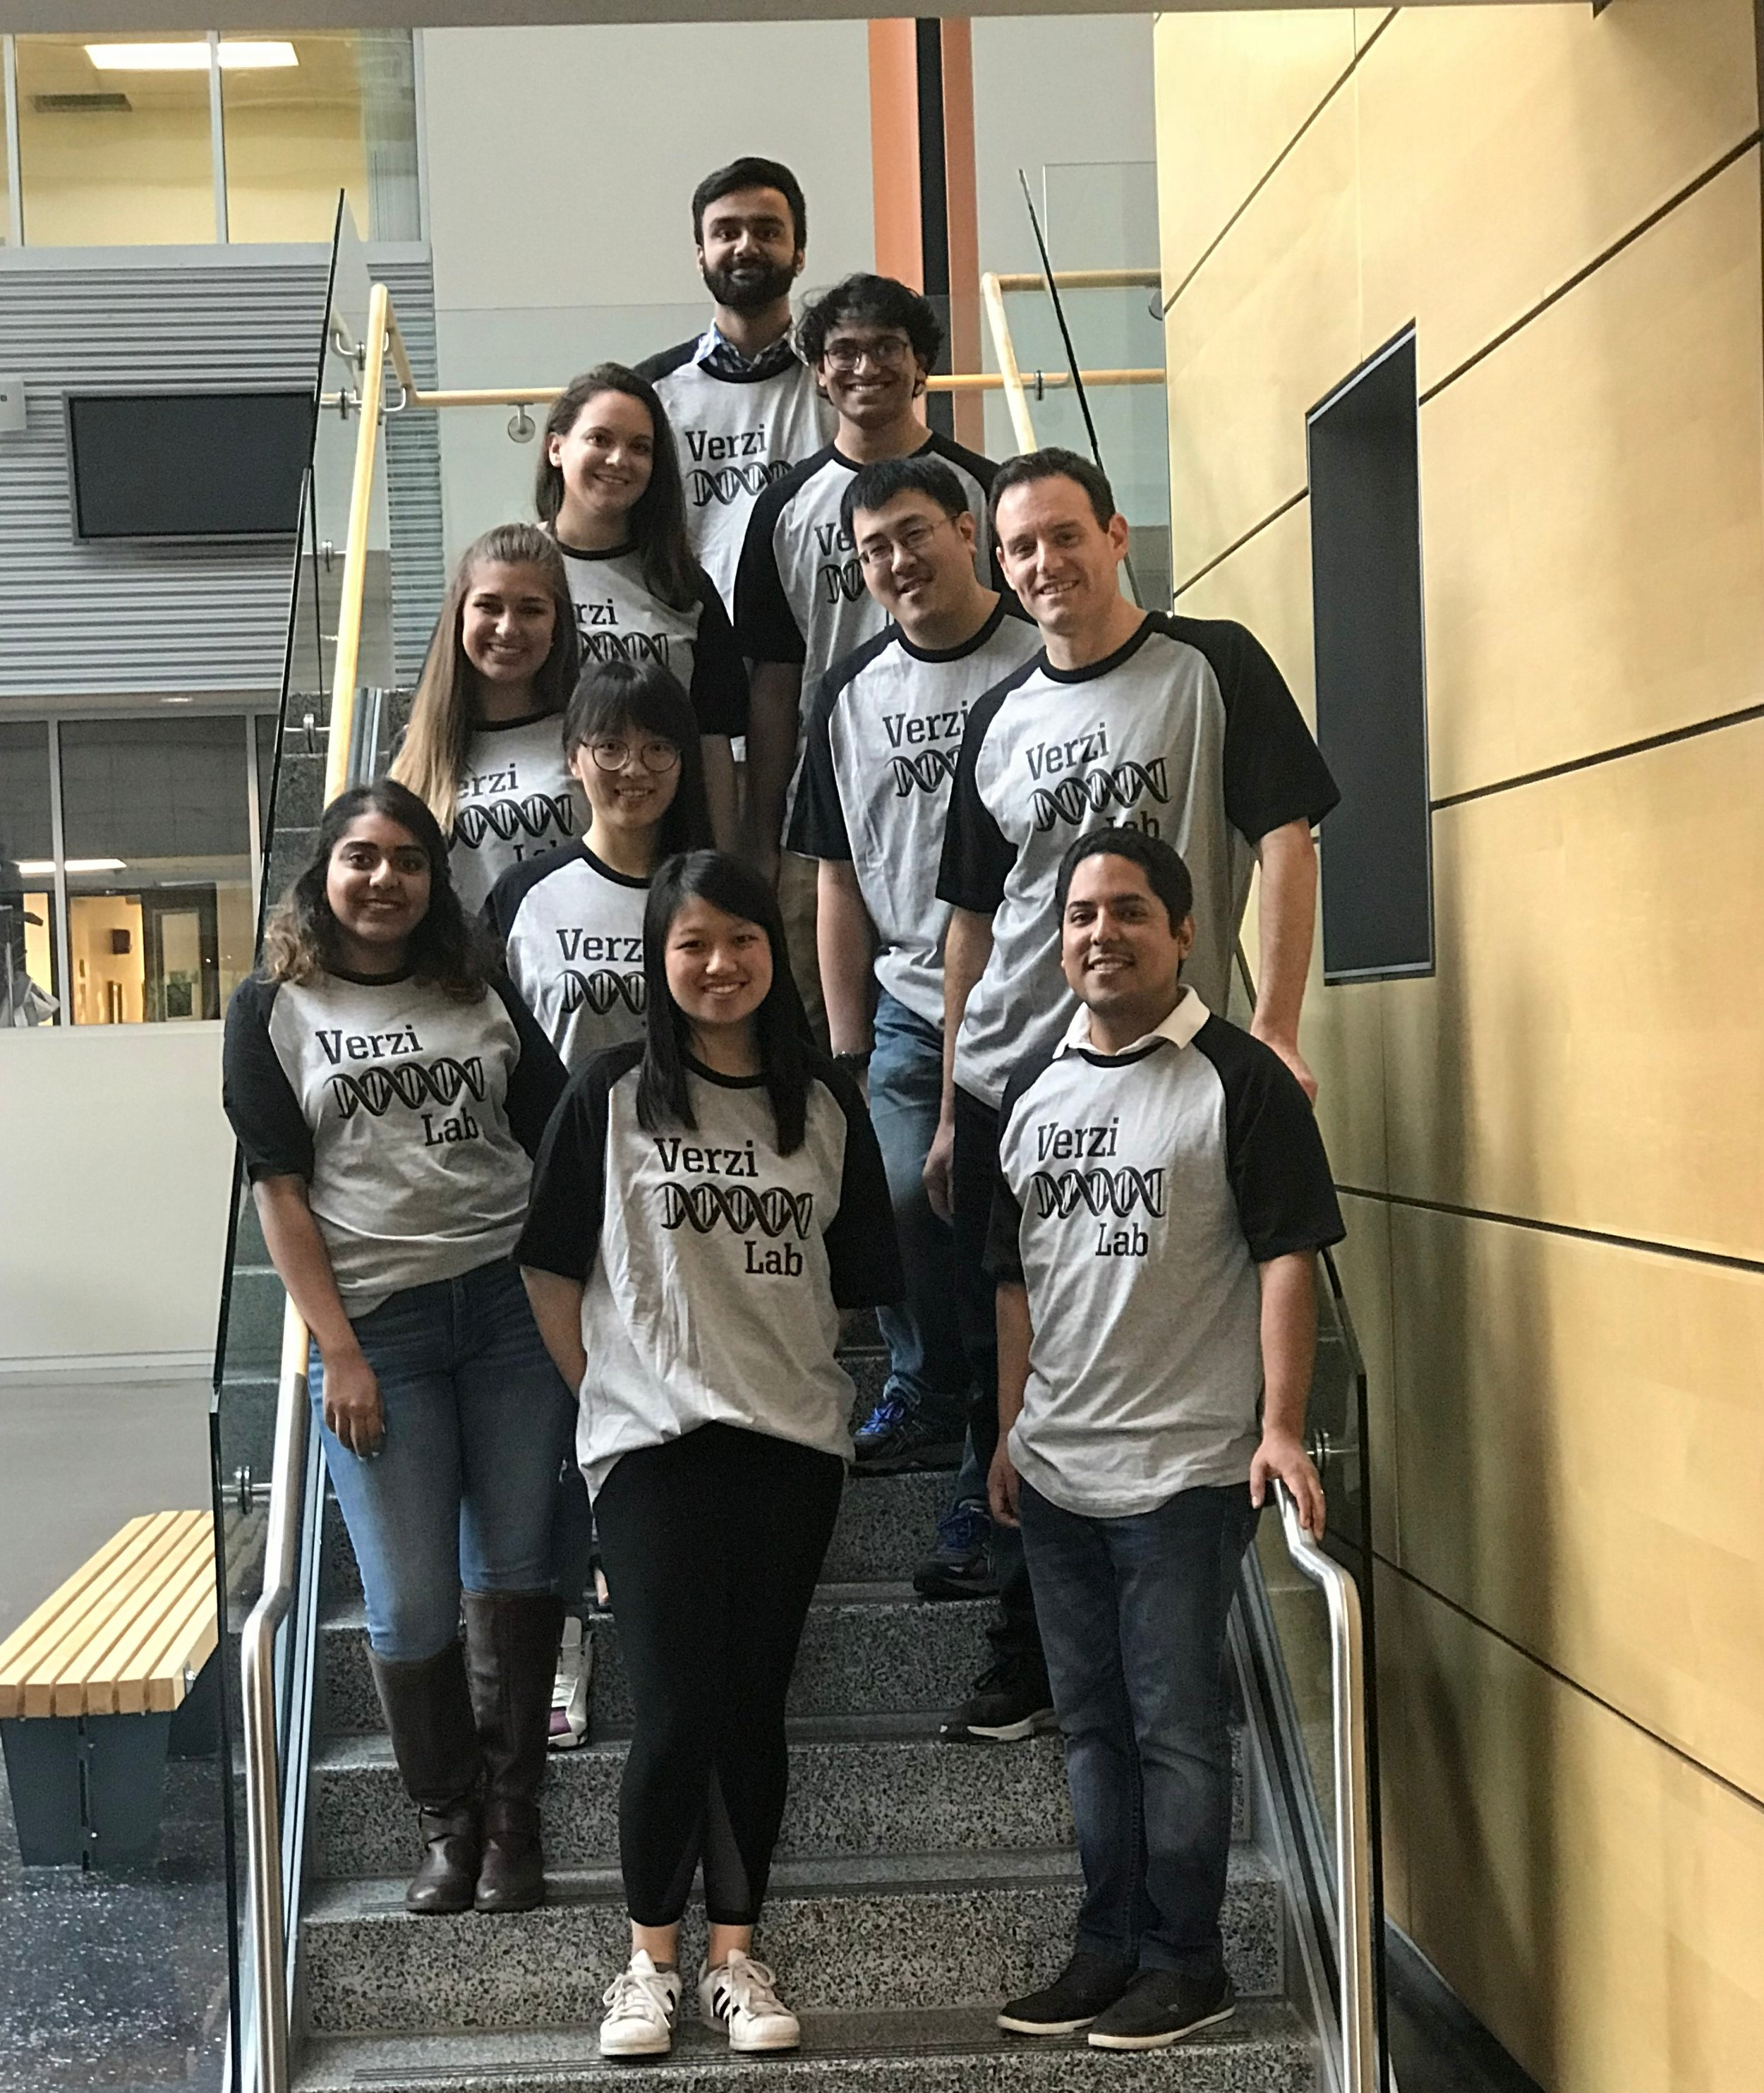 Top to Bottom and Left to Right: Rohit Aita, Bailey Warder, Aditya Parthasarathy, Natalie Toke, Kevin Tong, Lei Chen, Mike Verzi, Pooja Shah, Shirley Luo, Oscar Pellon Cardenas.